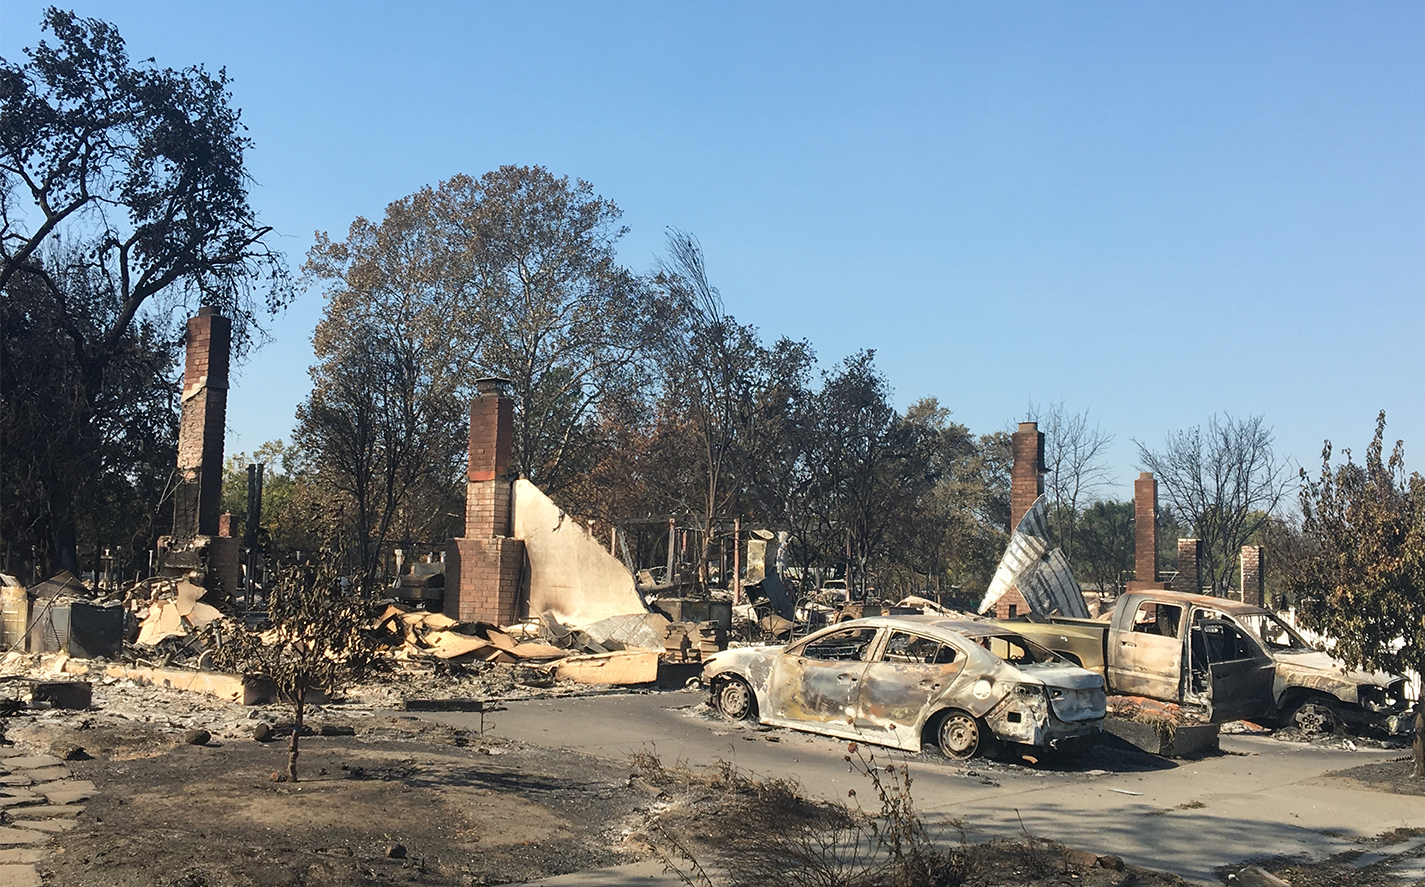 Drone mapping was used to map all the burned cars in Santa Rosa Fire Storm